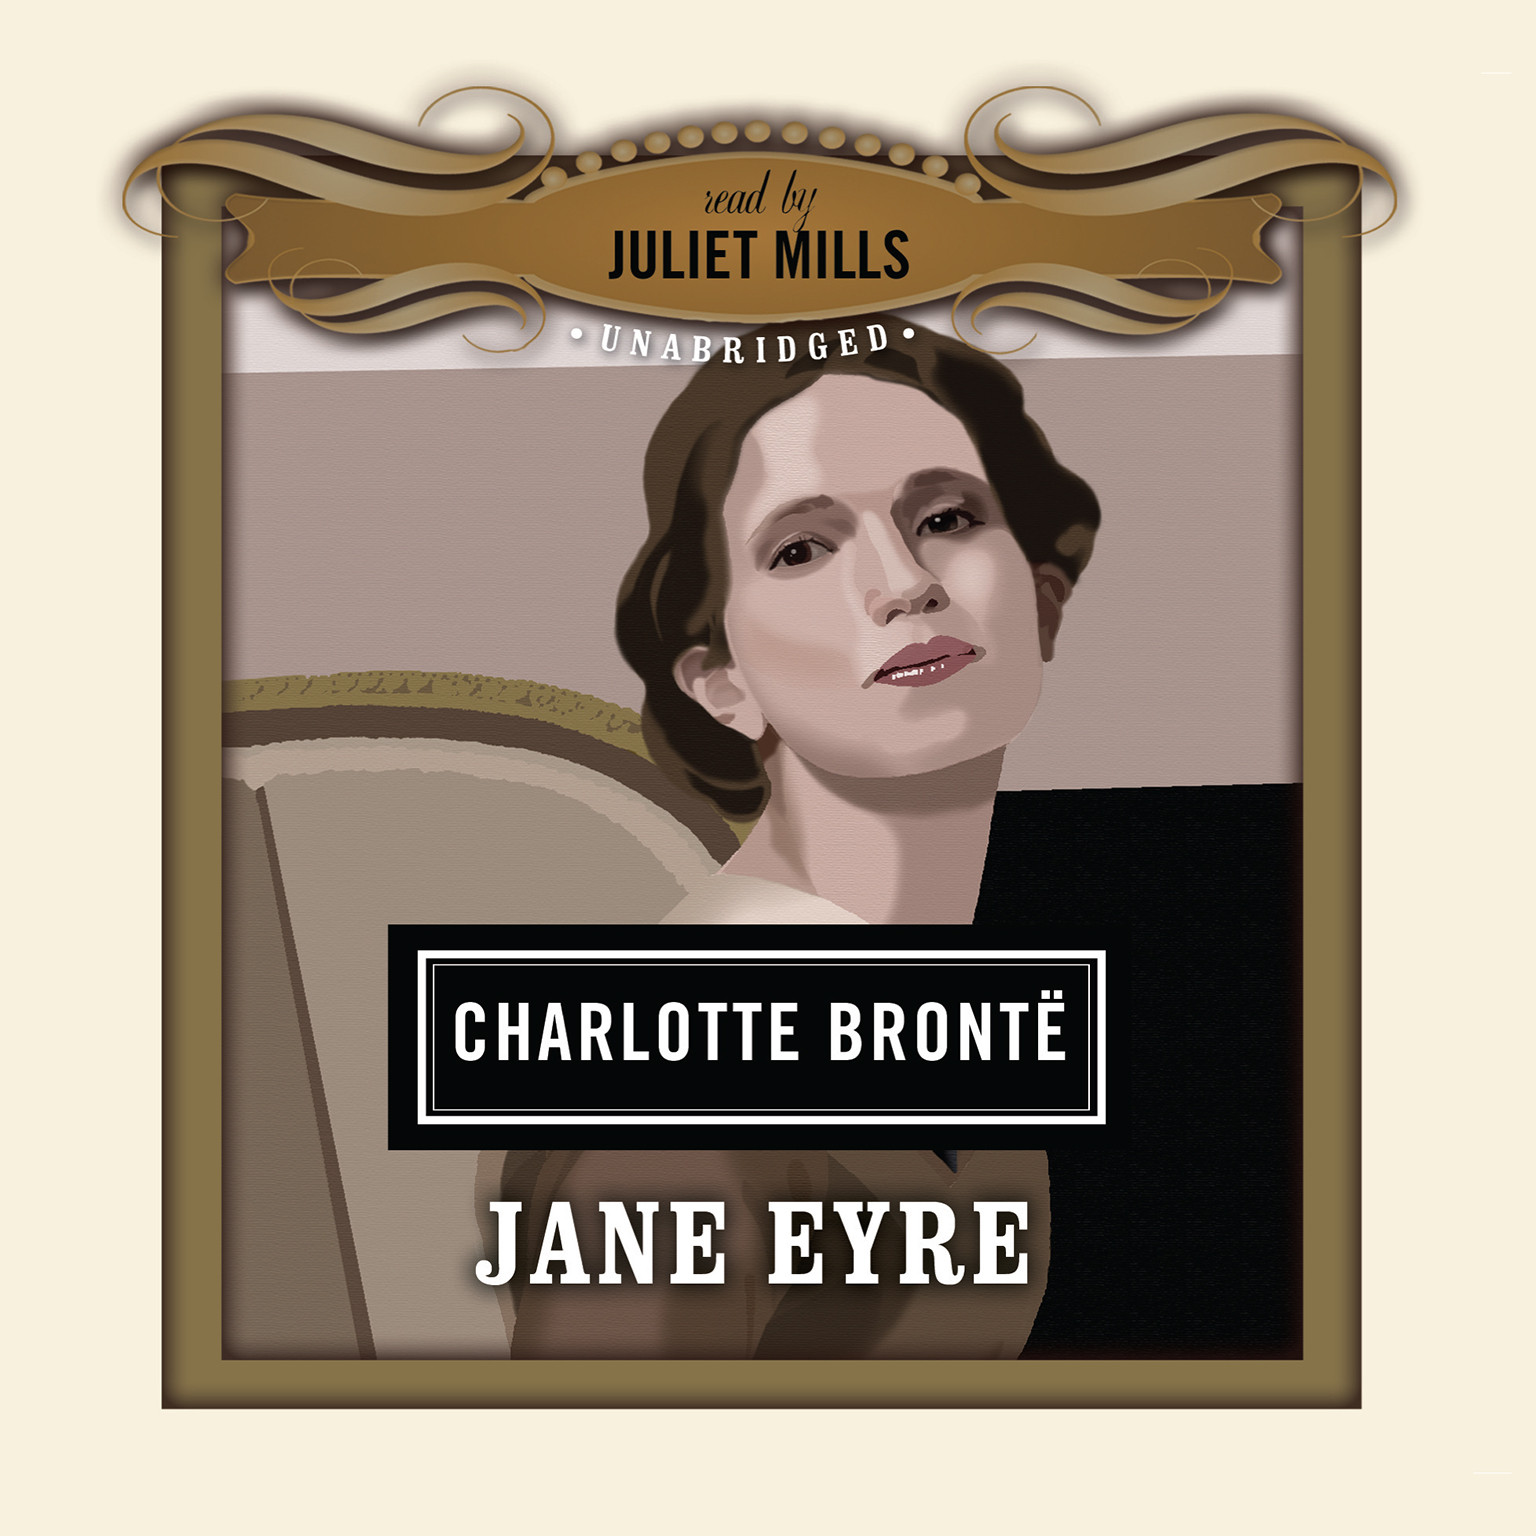 an analysis of jane eyre as an extension of charlotte bronte